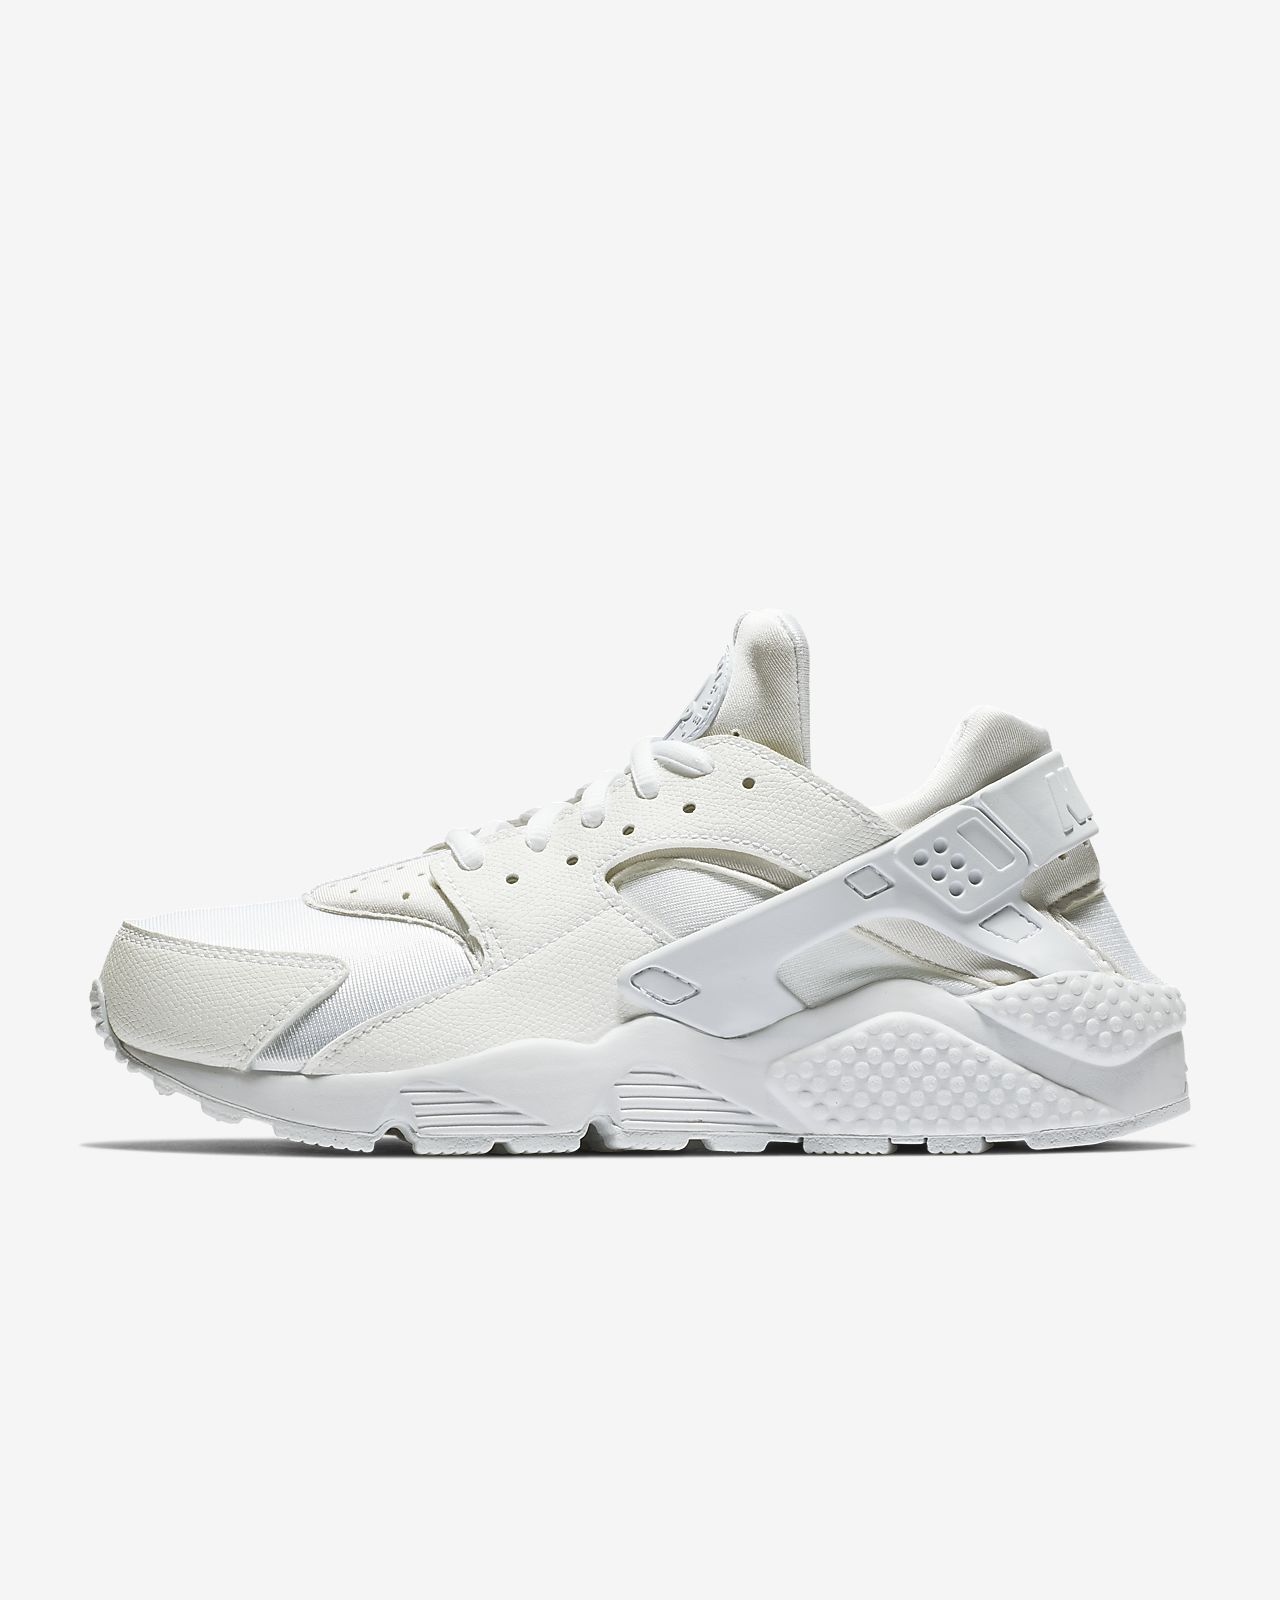 26ace7558d Low Resolution Nike Air Huarache Damenschuh Nike Air Huarache Damenschuh